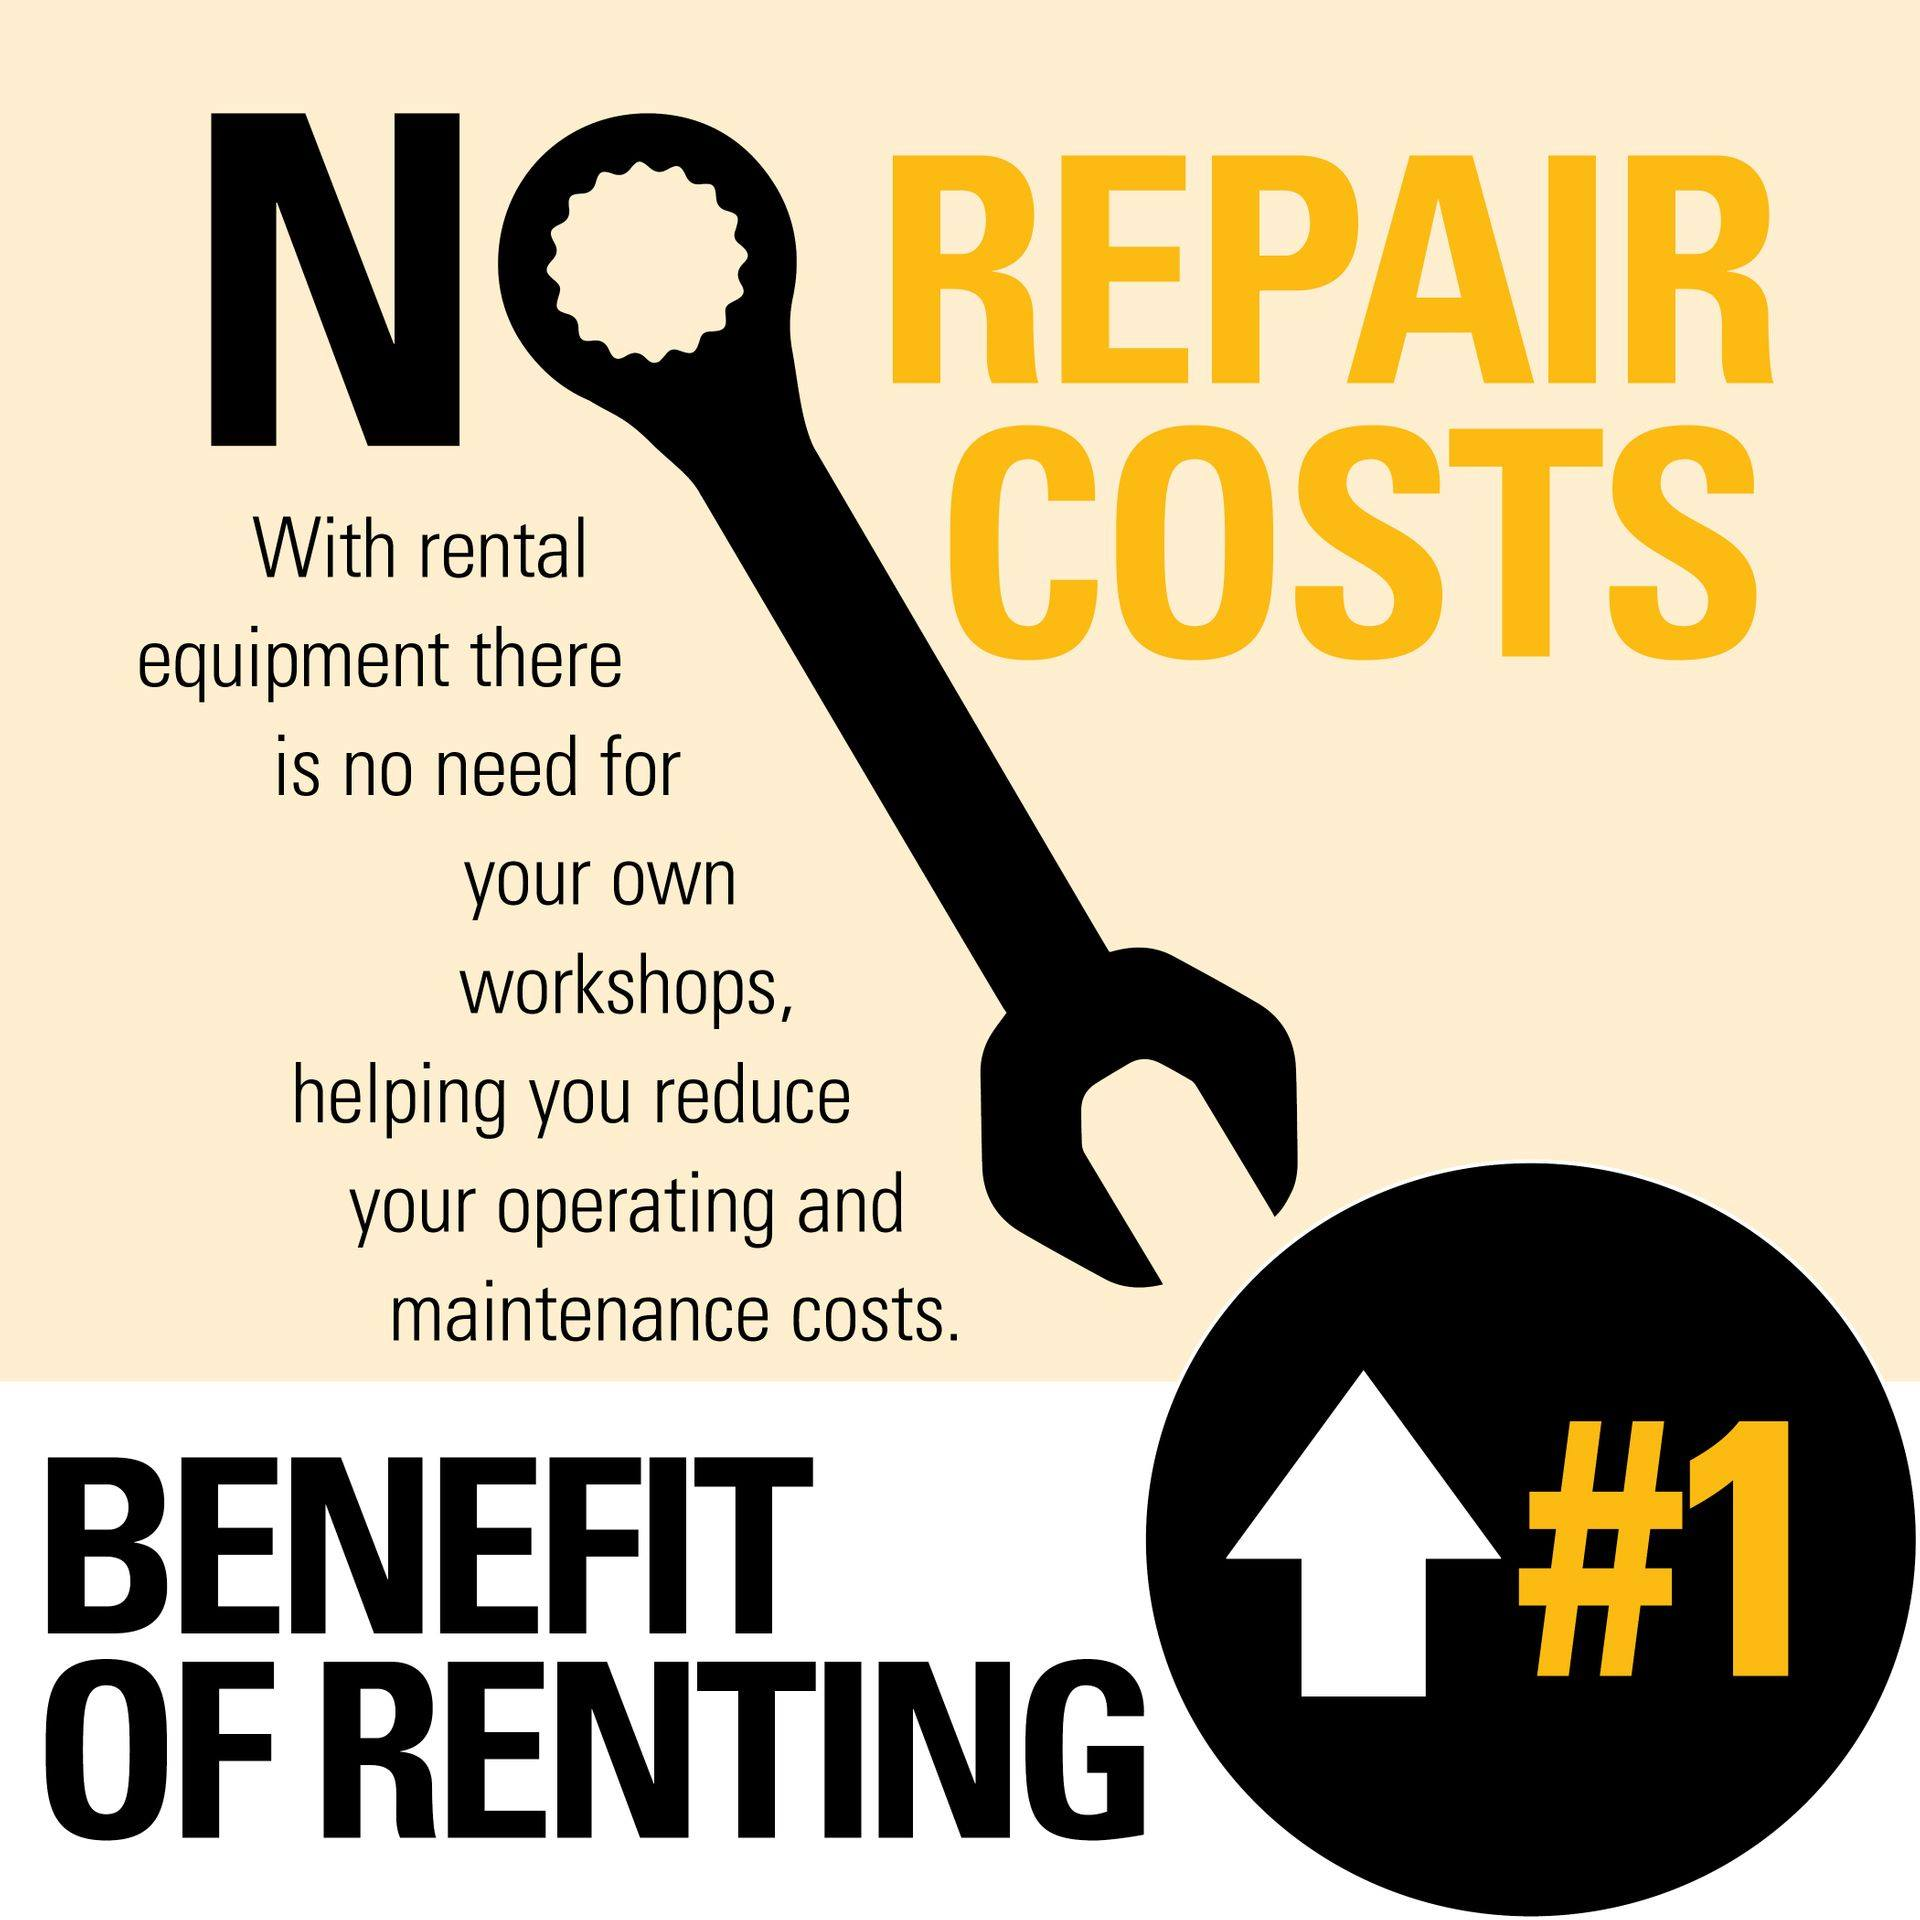 1 Benefit of Renting